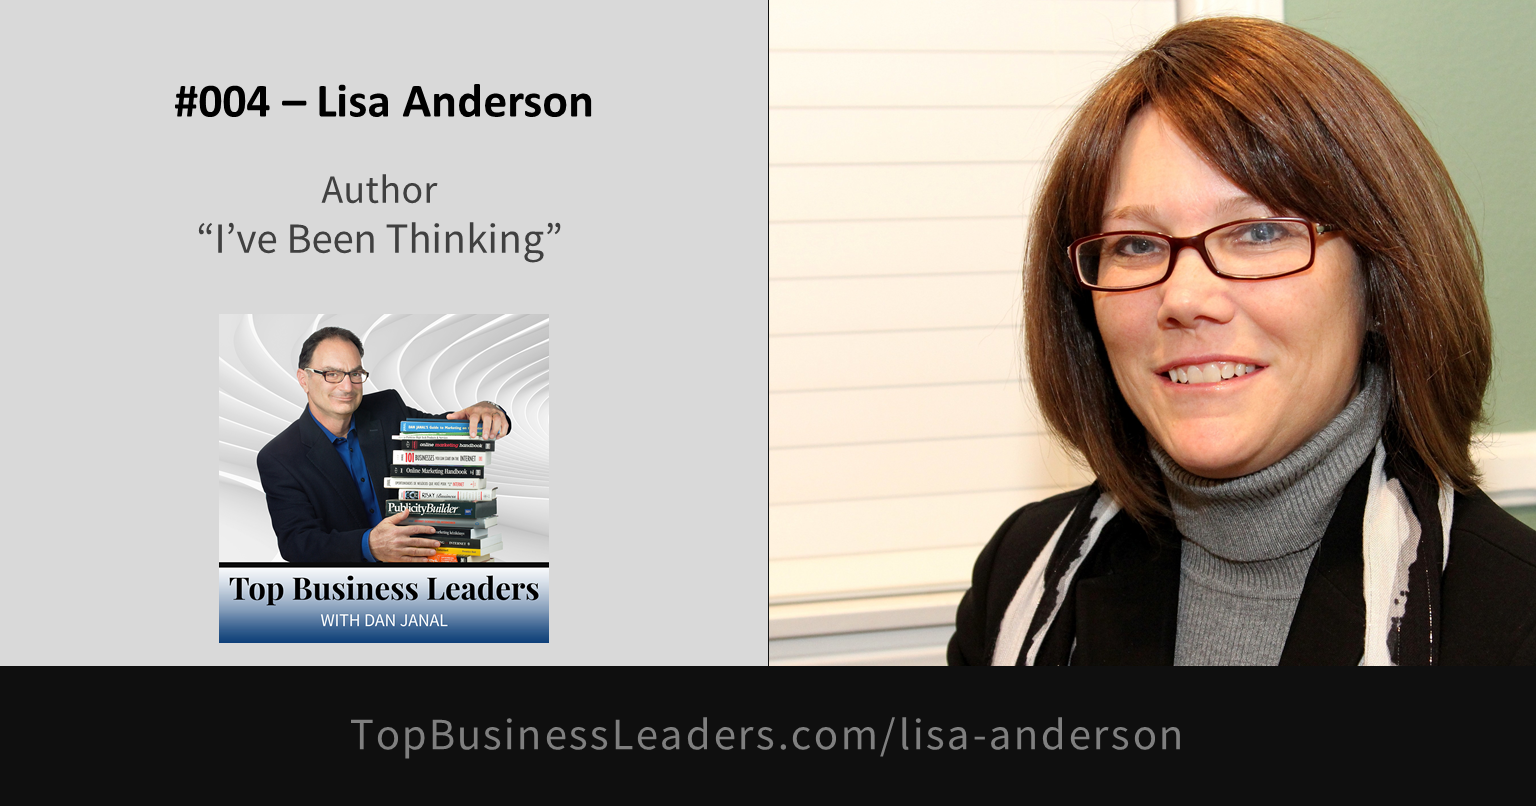 lisa-anderson-author-ive-been-thinking